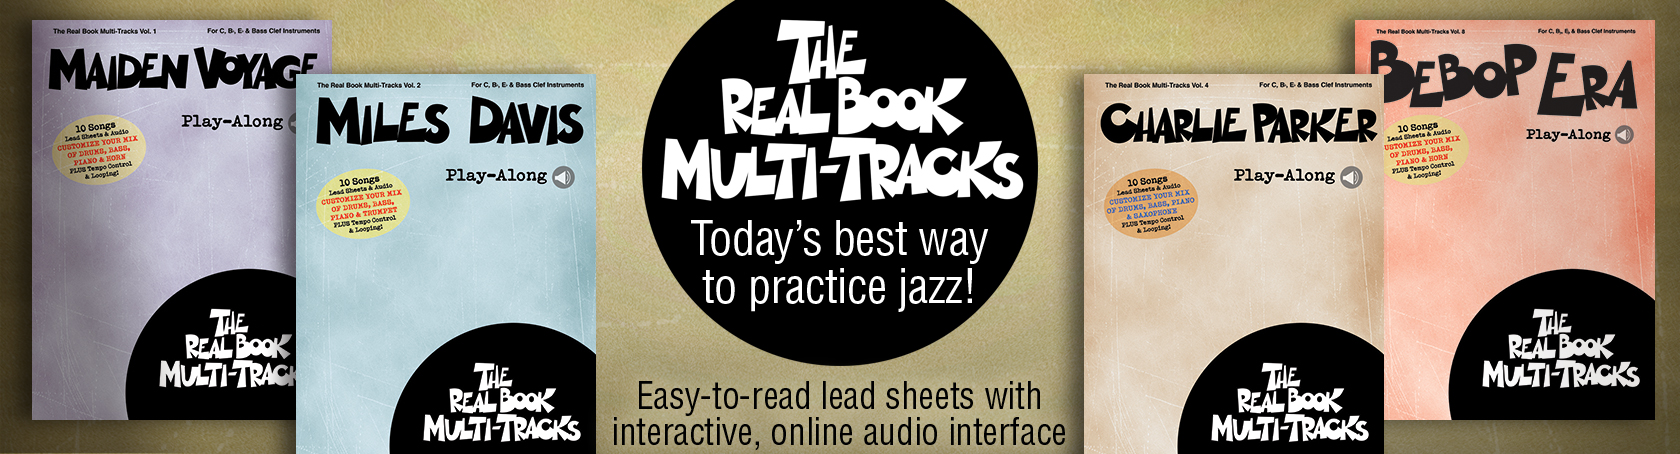 Real Book Multi-Tracks - Today's best way to practice jazz